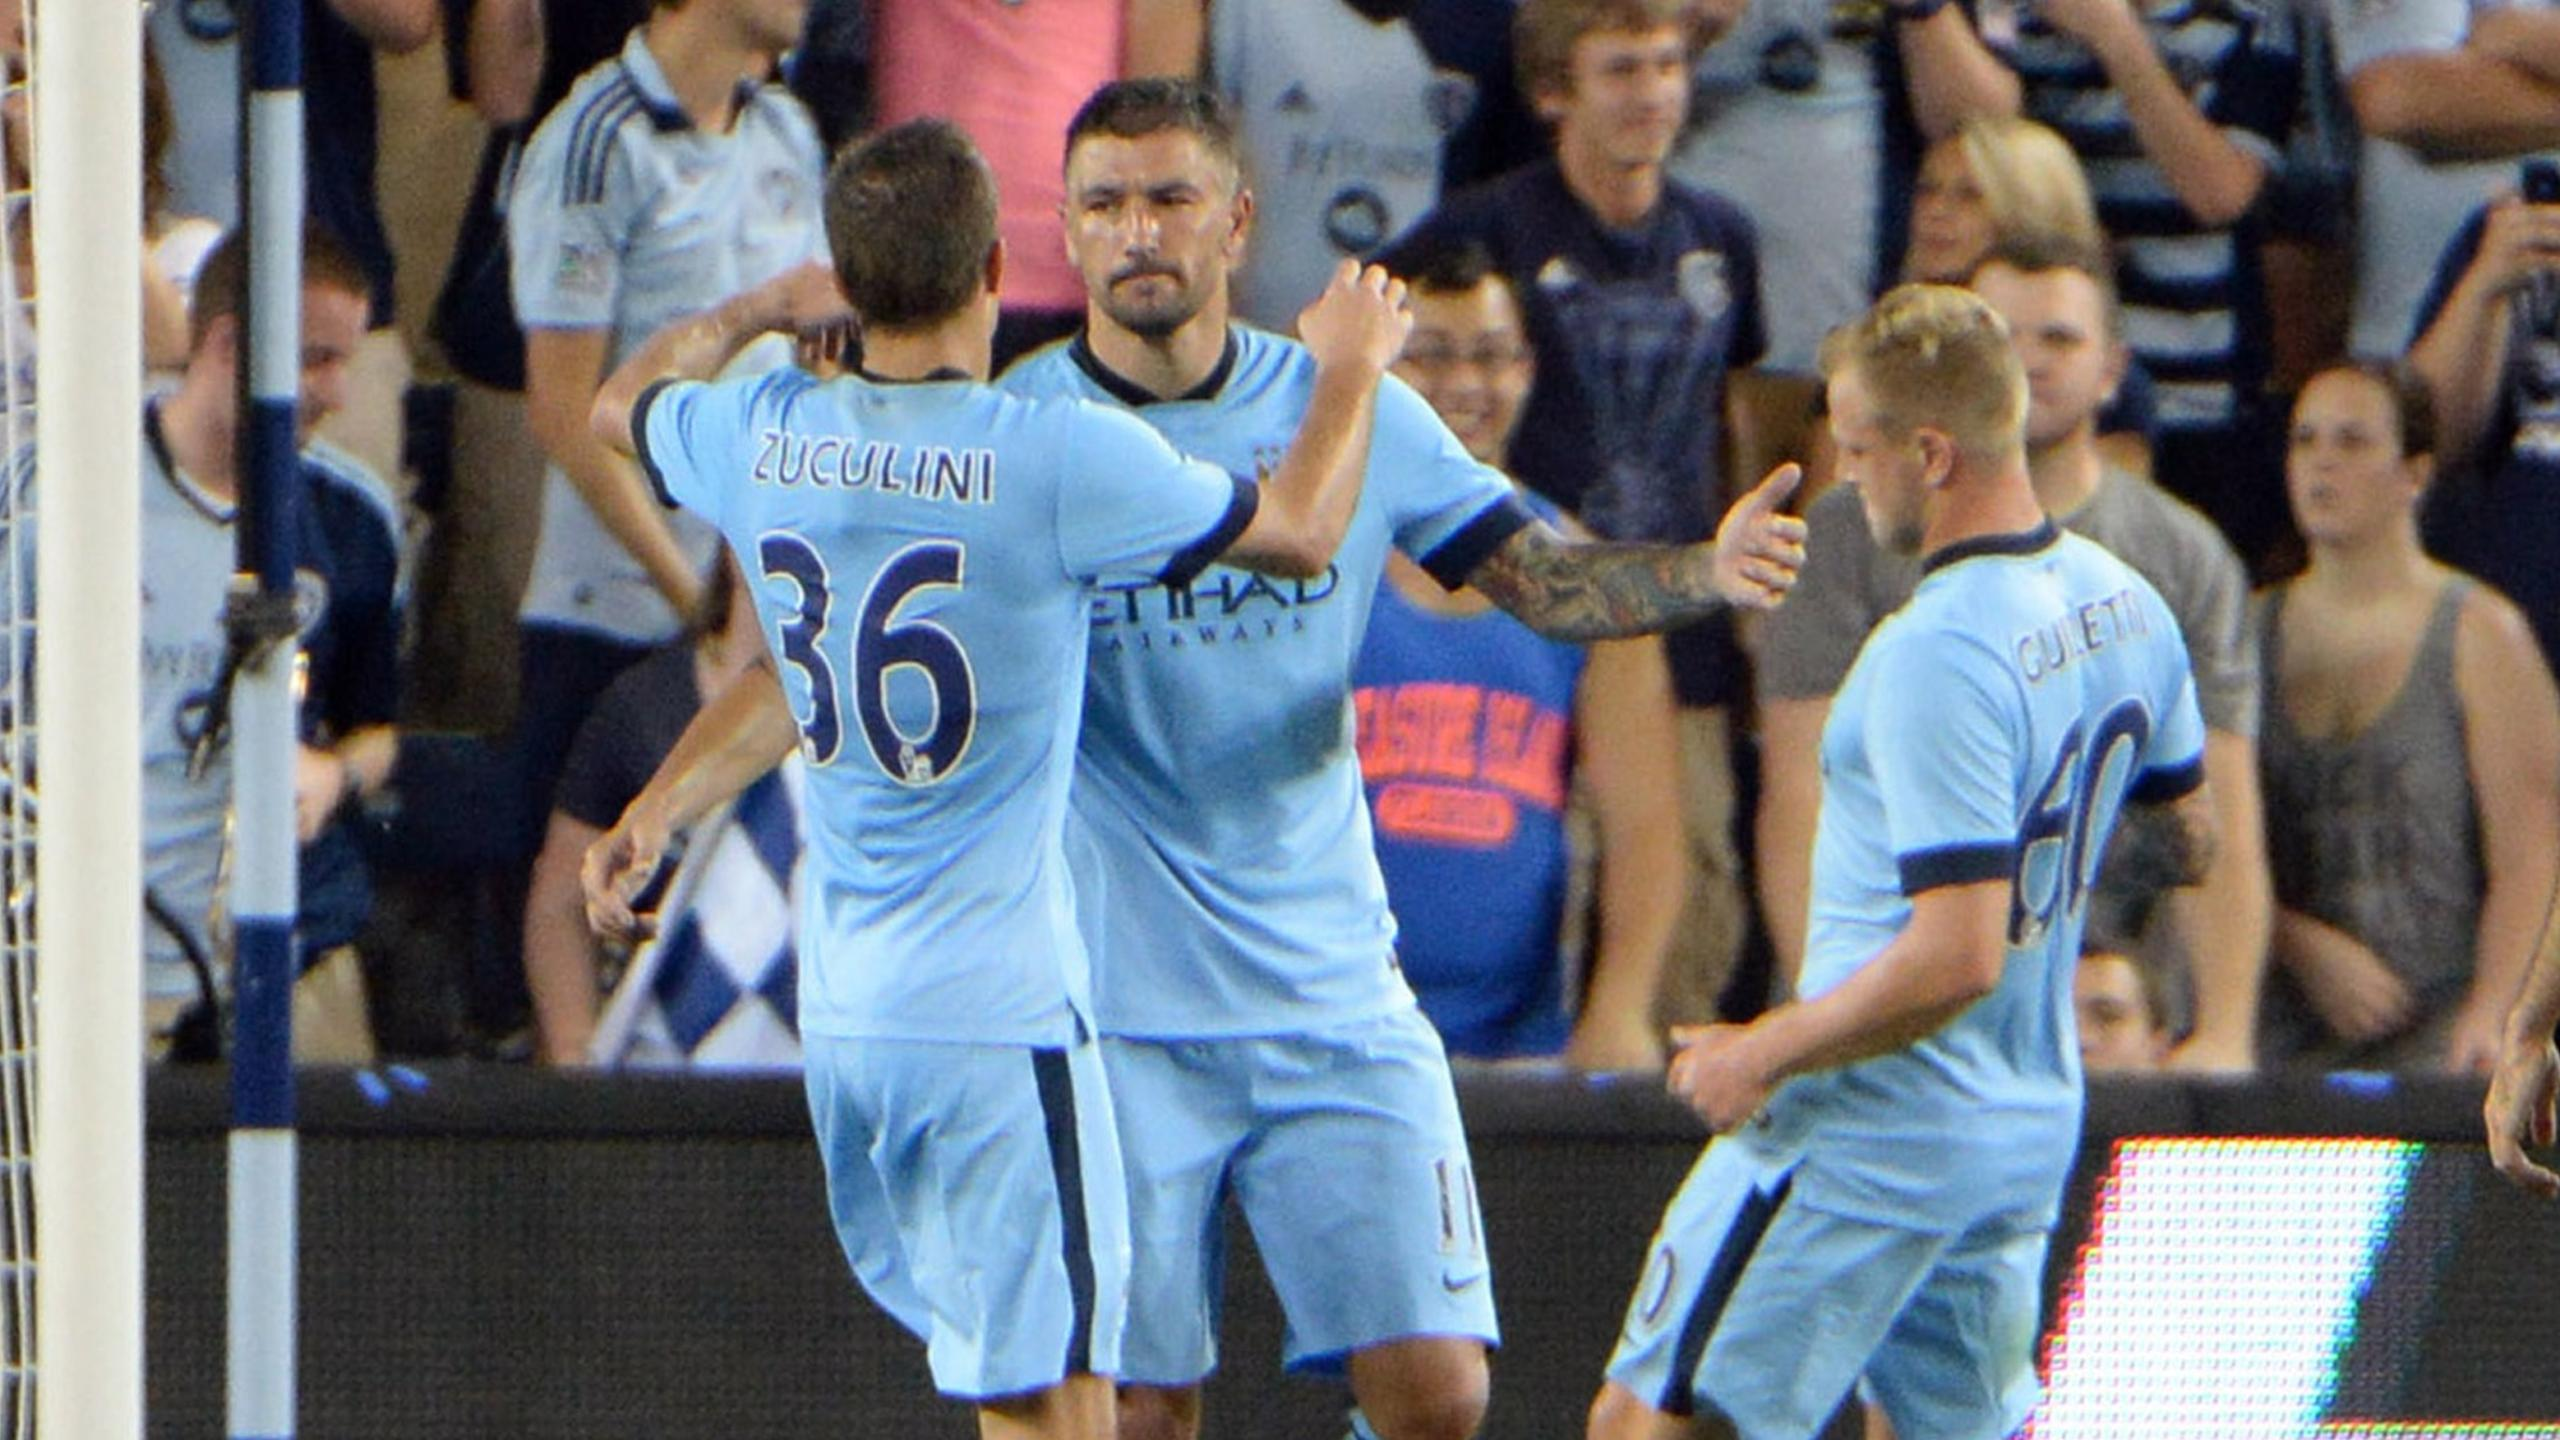 Friendly match - Manchester City go out of International Champions Cup